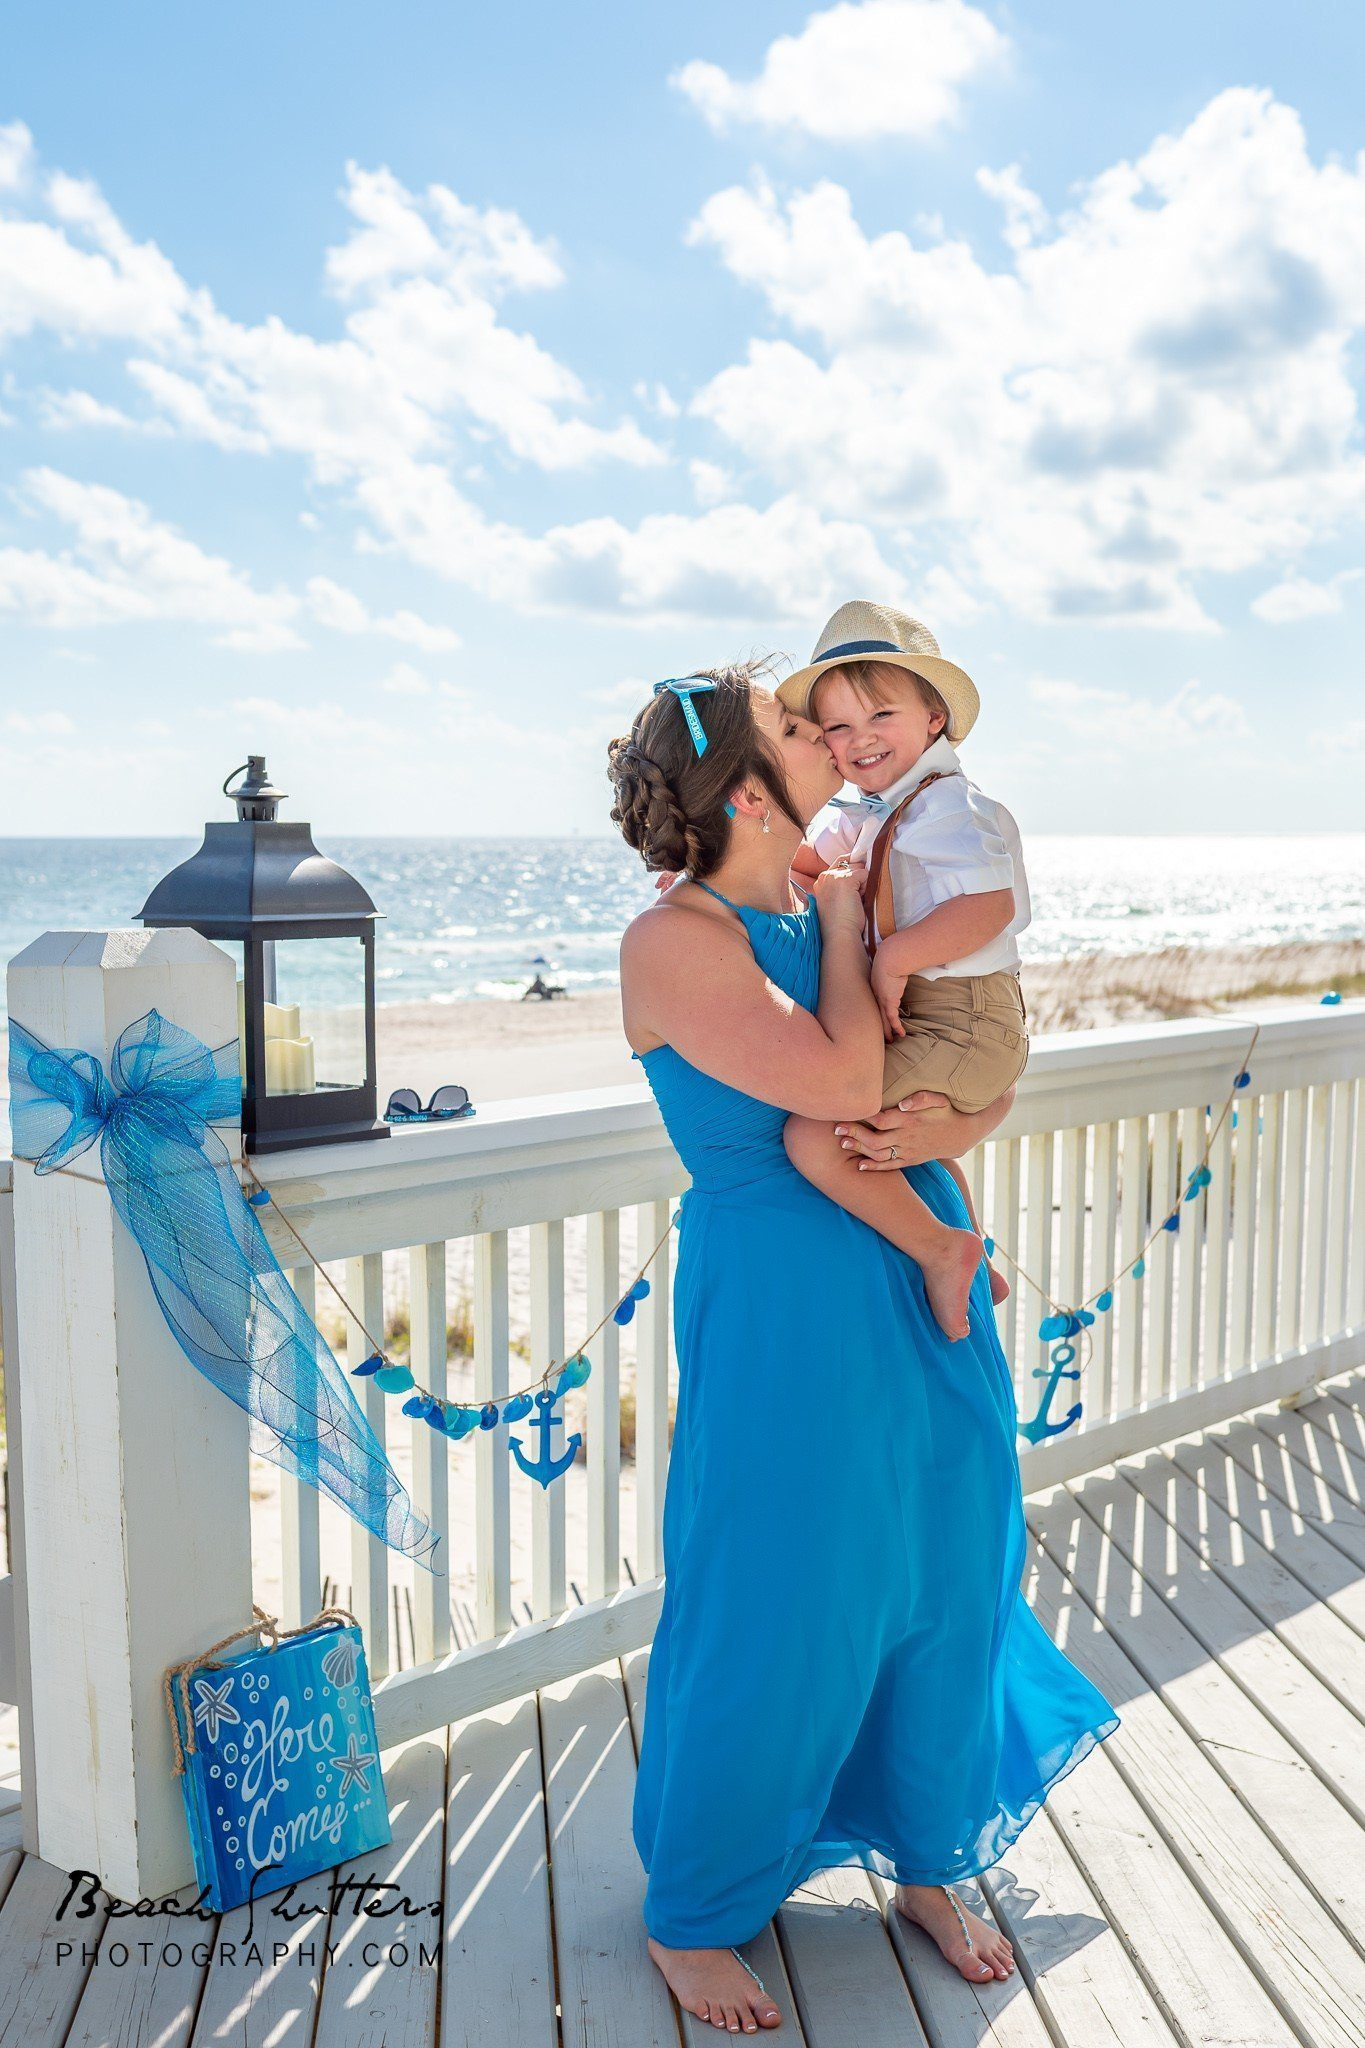 Seaside wedding photographers